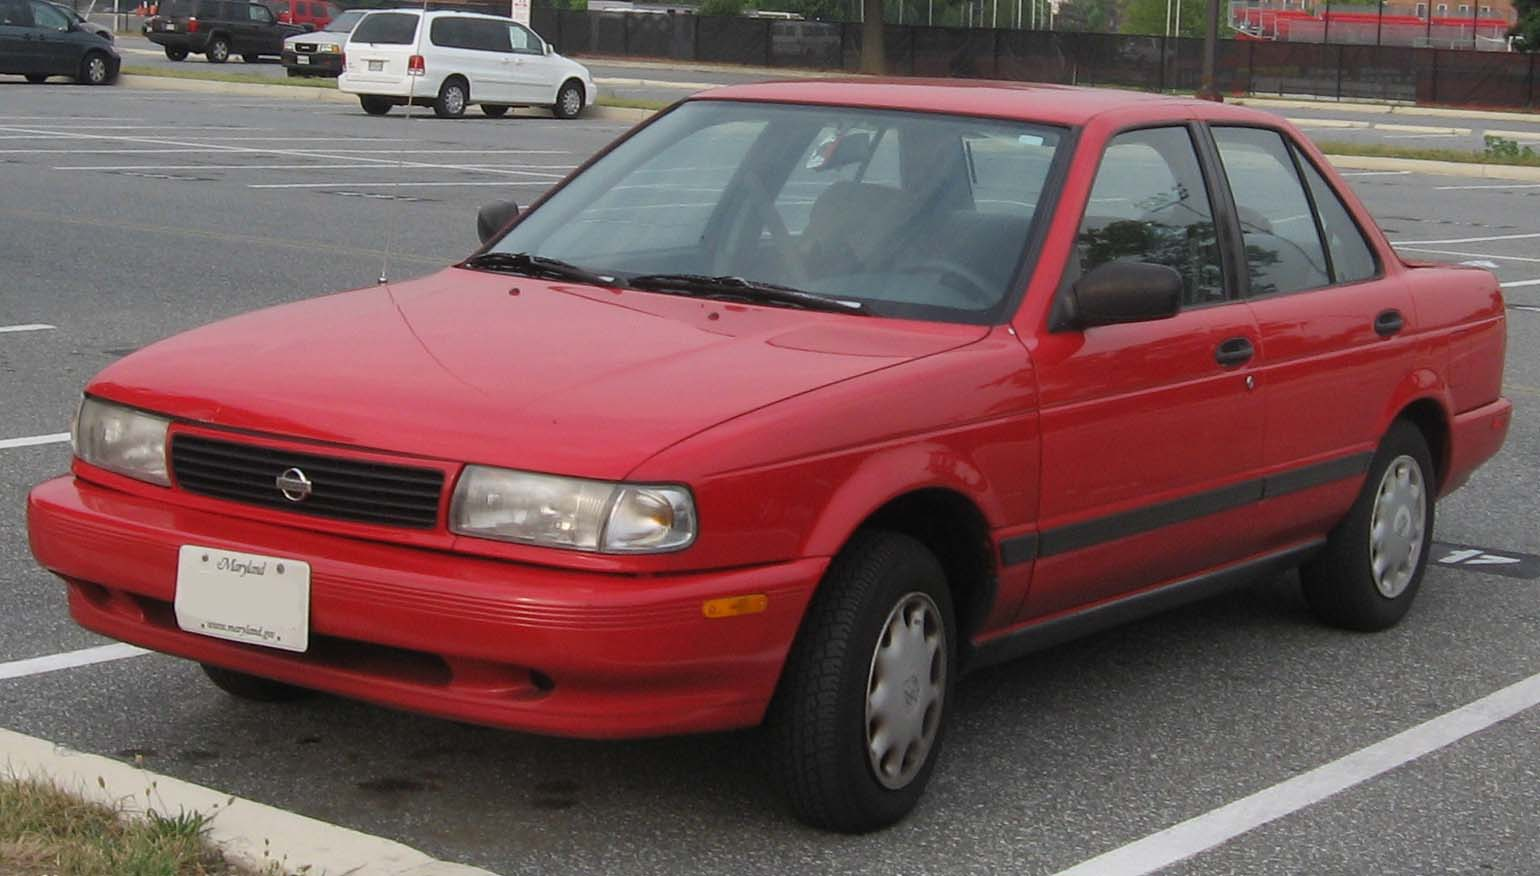 1991 Nissan Sentra Photos Informations Articles Bestcarmag Com Nissan sentra nissan tuning b13 nissan popular mechanics nissan skyline jdm cars cars and motorcycles super cars toyota. 1991 nissan sentra photos informations